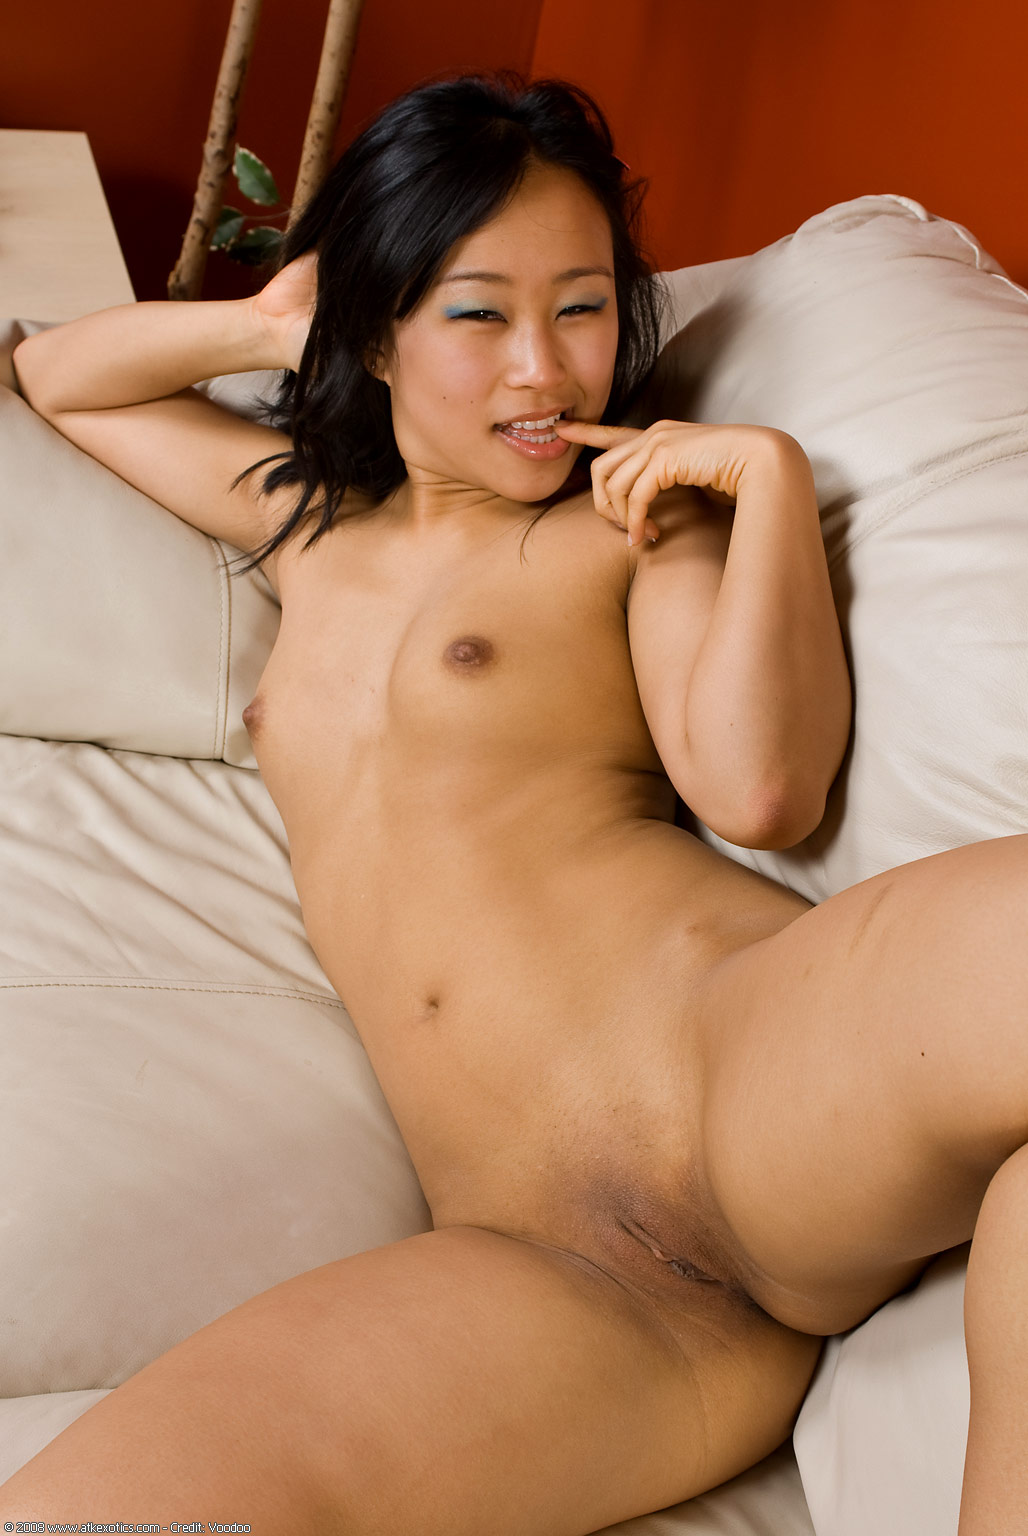 Sexy nude asian girls shemales